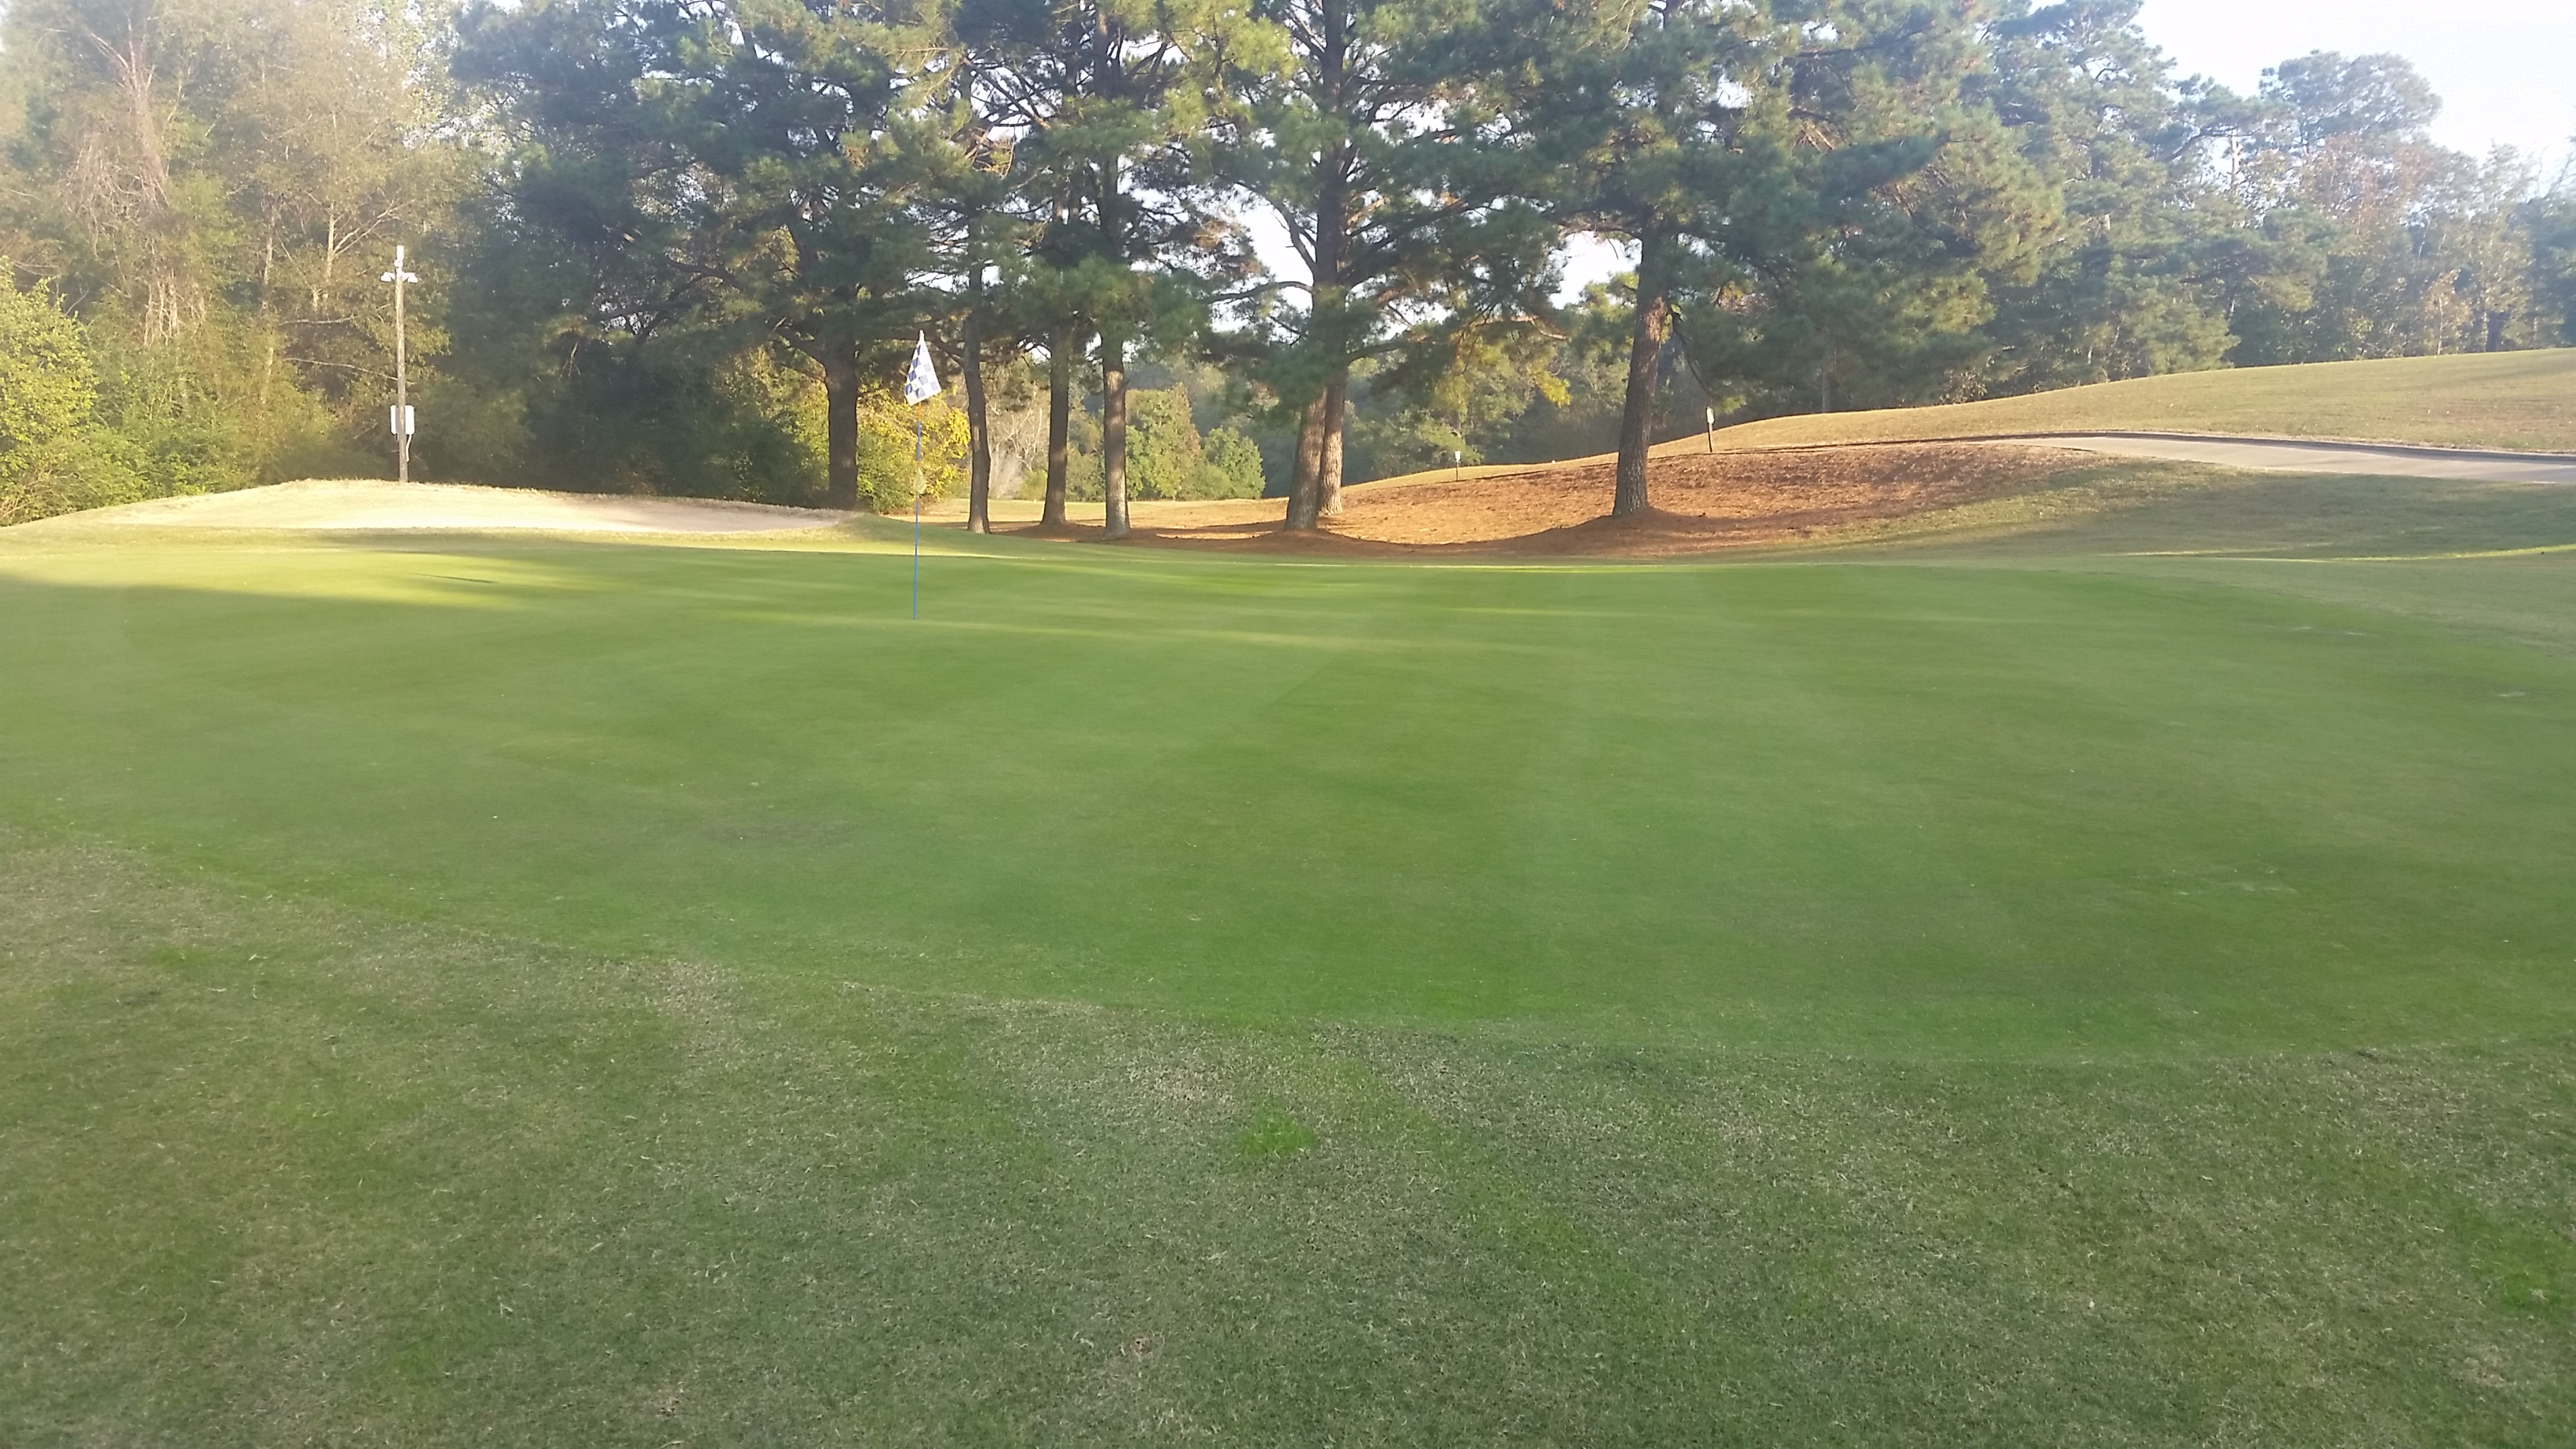 https://alabama-travel.s3.amazonaws.com/partners-uploads/photo/image/5a92d8c2a3123ab48b000009/dothan_national_golf.jpg